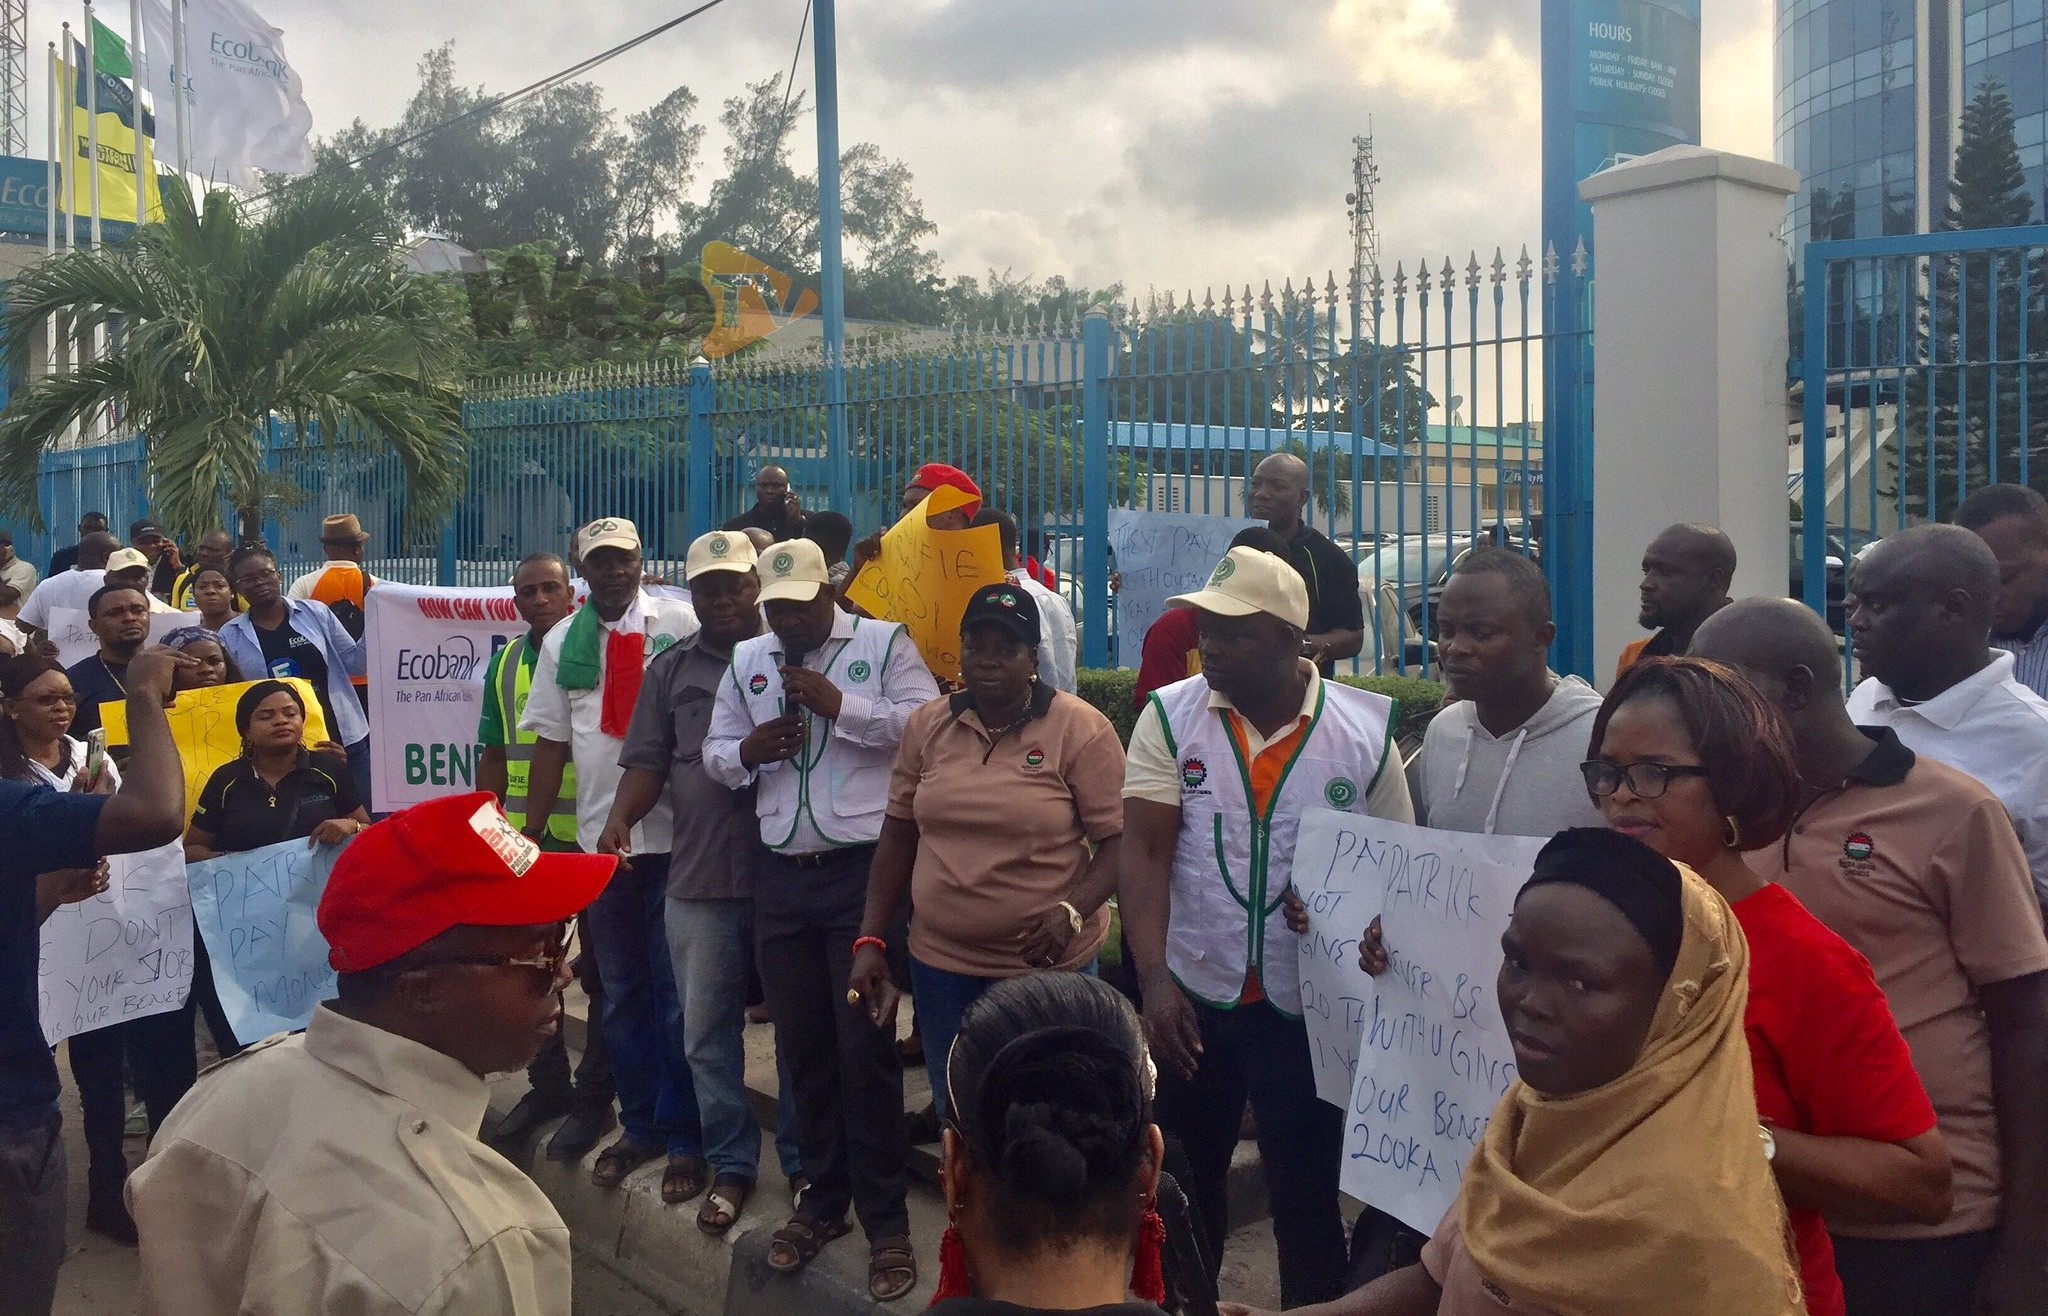 Organised labour pickets Ecobank over sack of 1000 workers